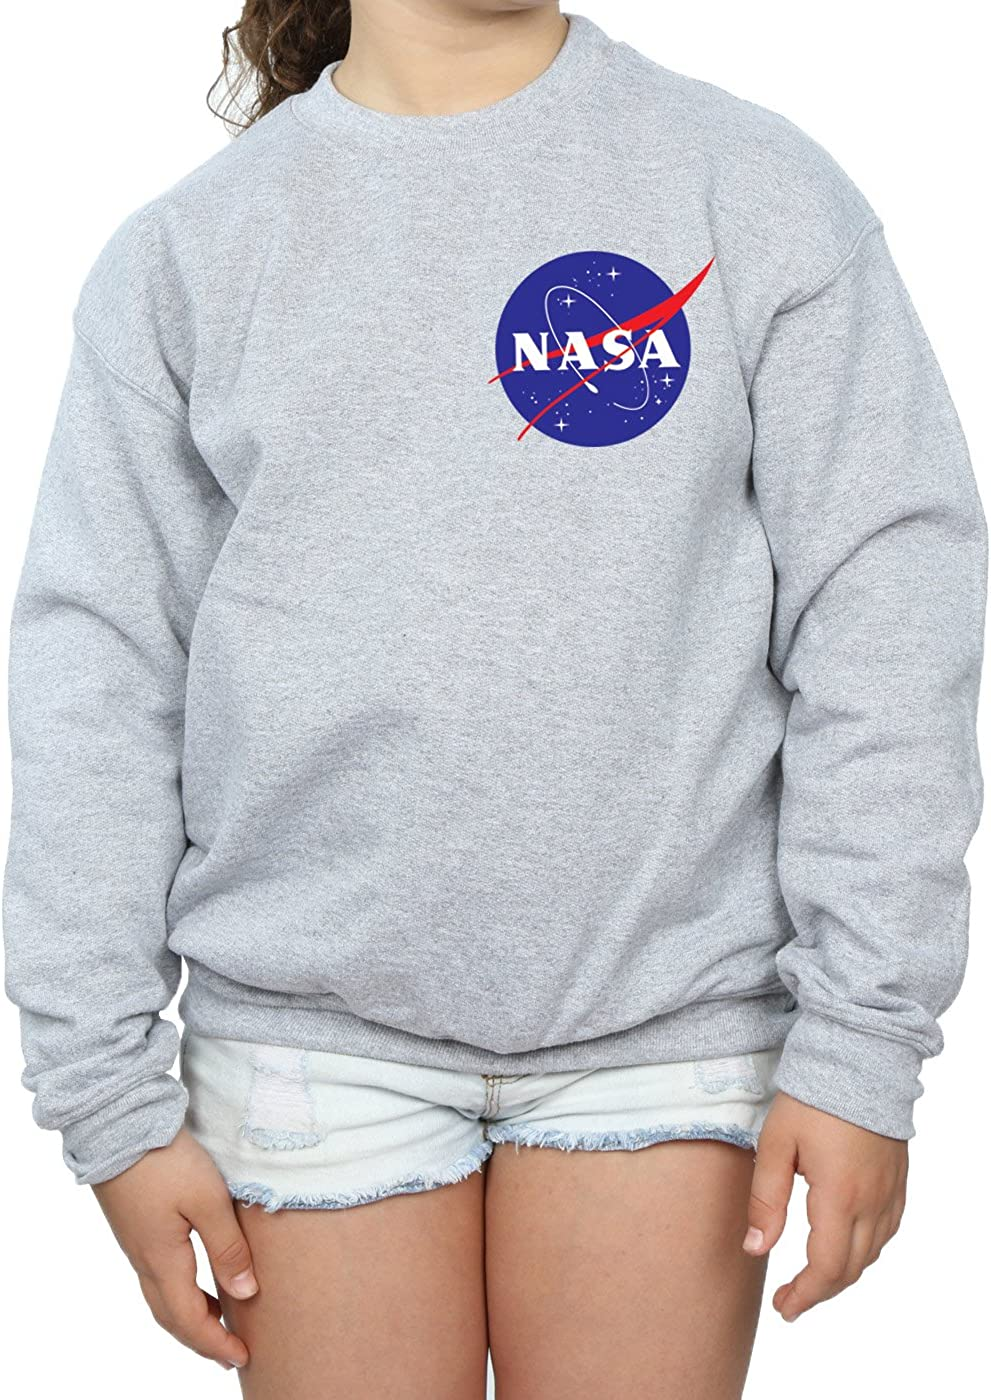 NASA Girls Classic Insignia Pocket Logo Sweatshirt